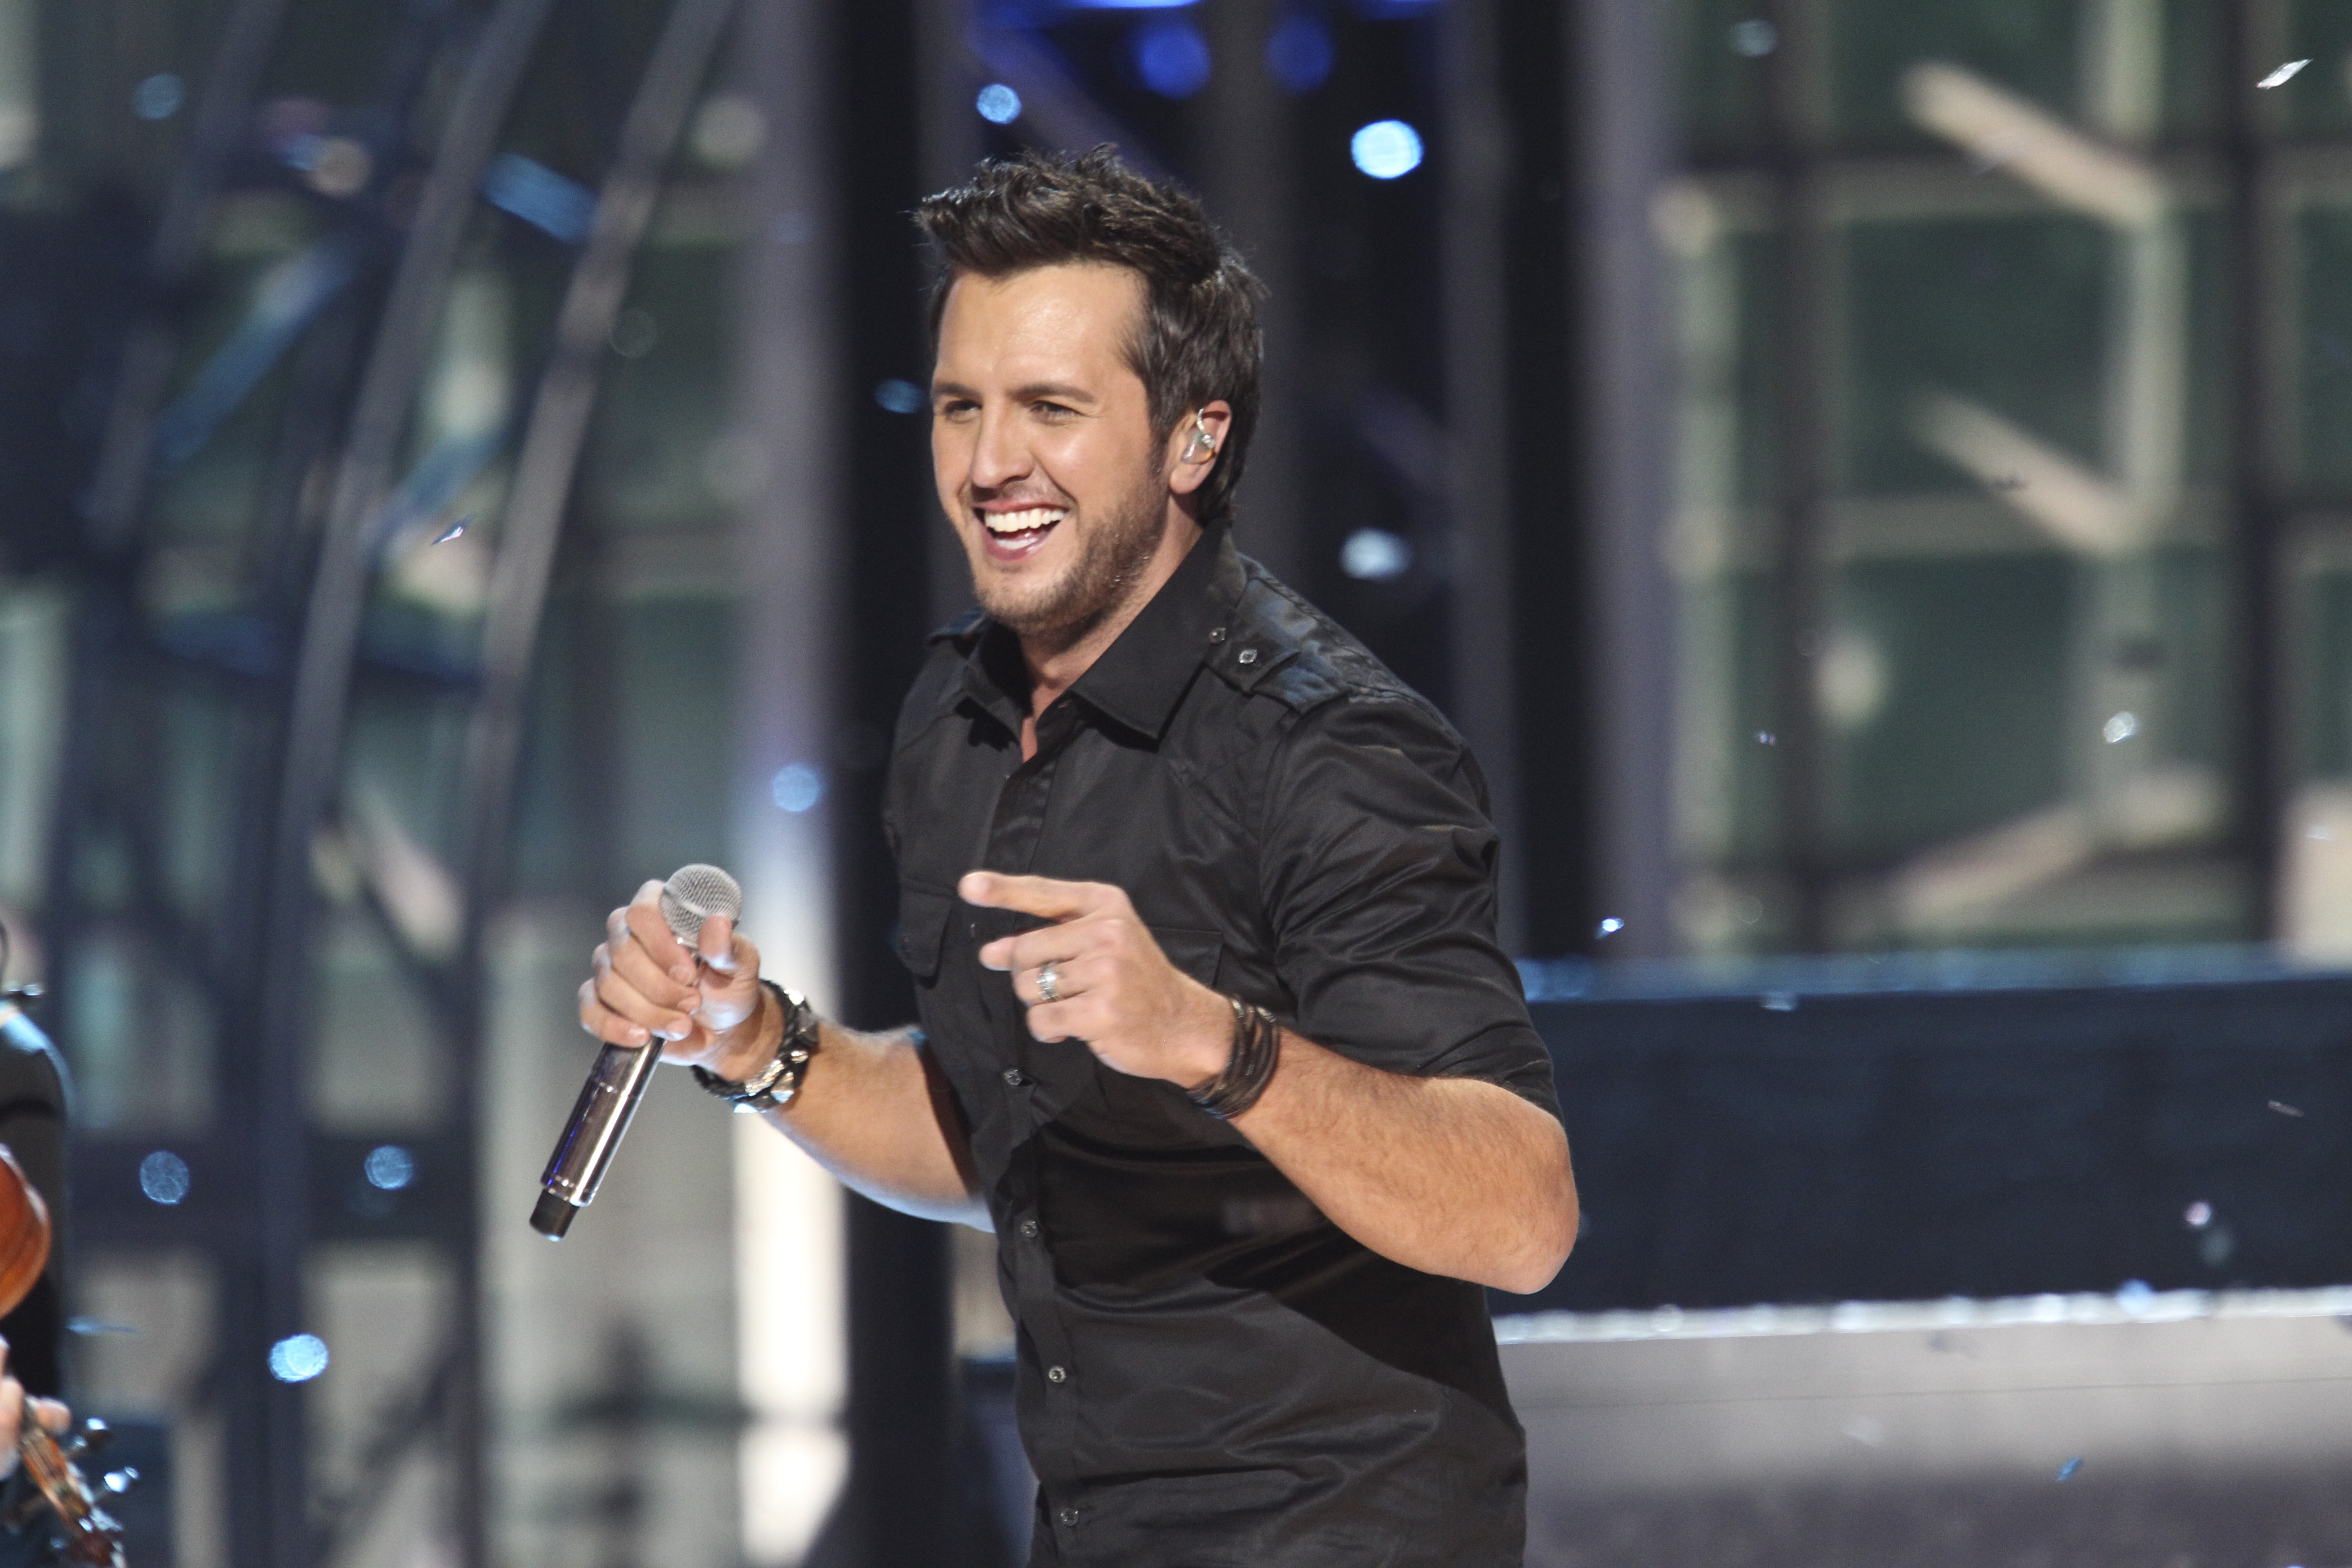 Luke Bryan scheduled to perform on the 48th annual ACM Awards